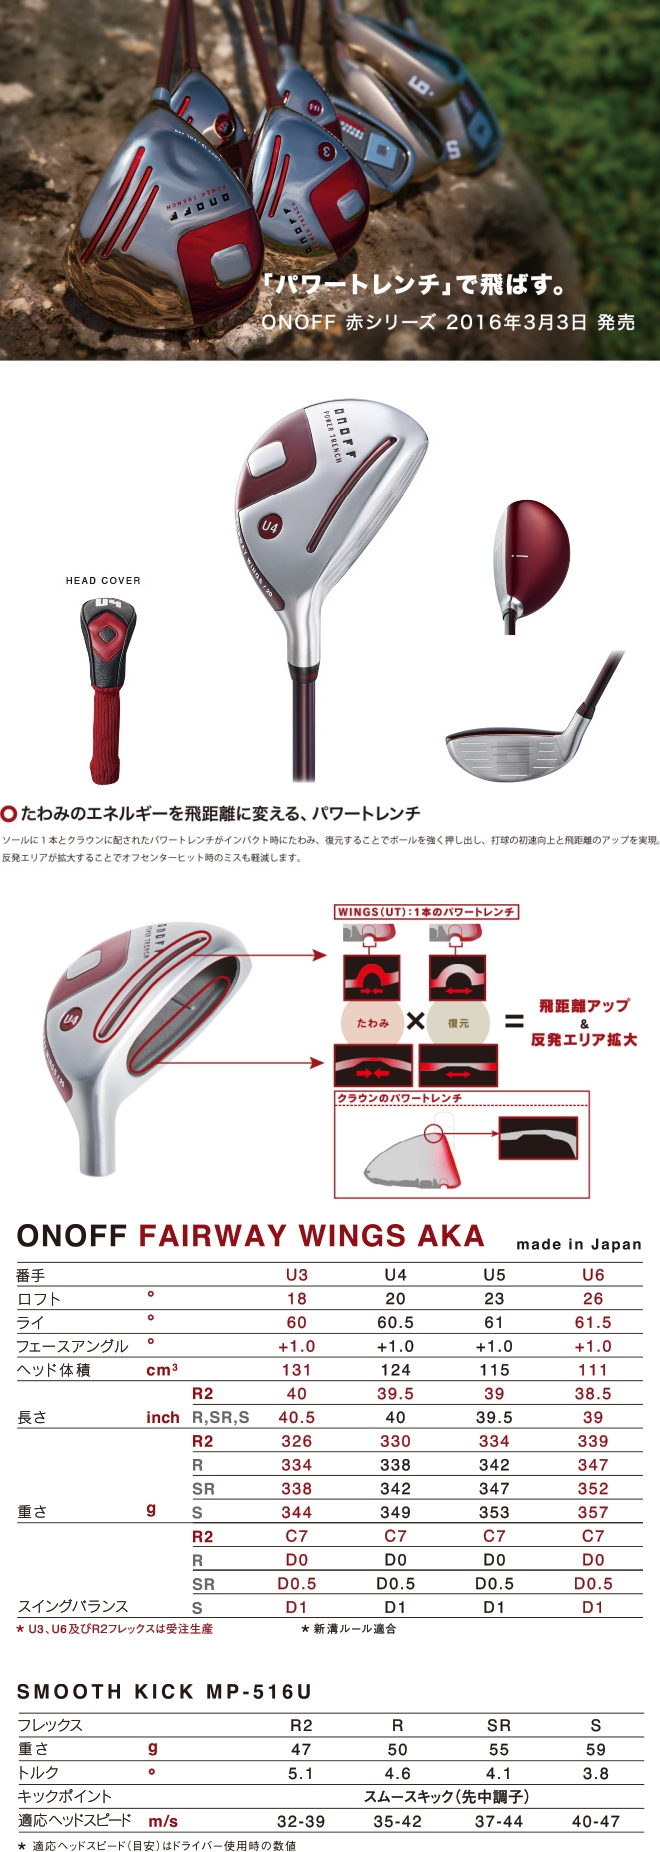 ONOFF 2016 Fairway Wings Aka Utility